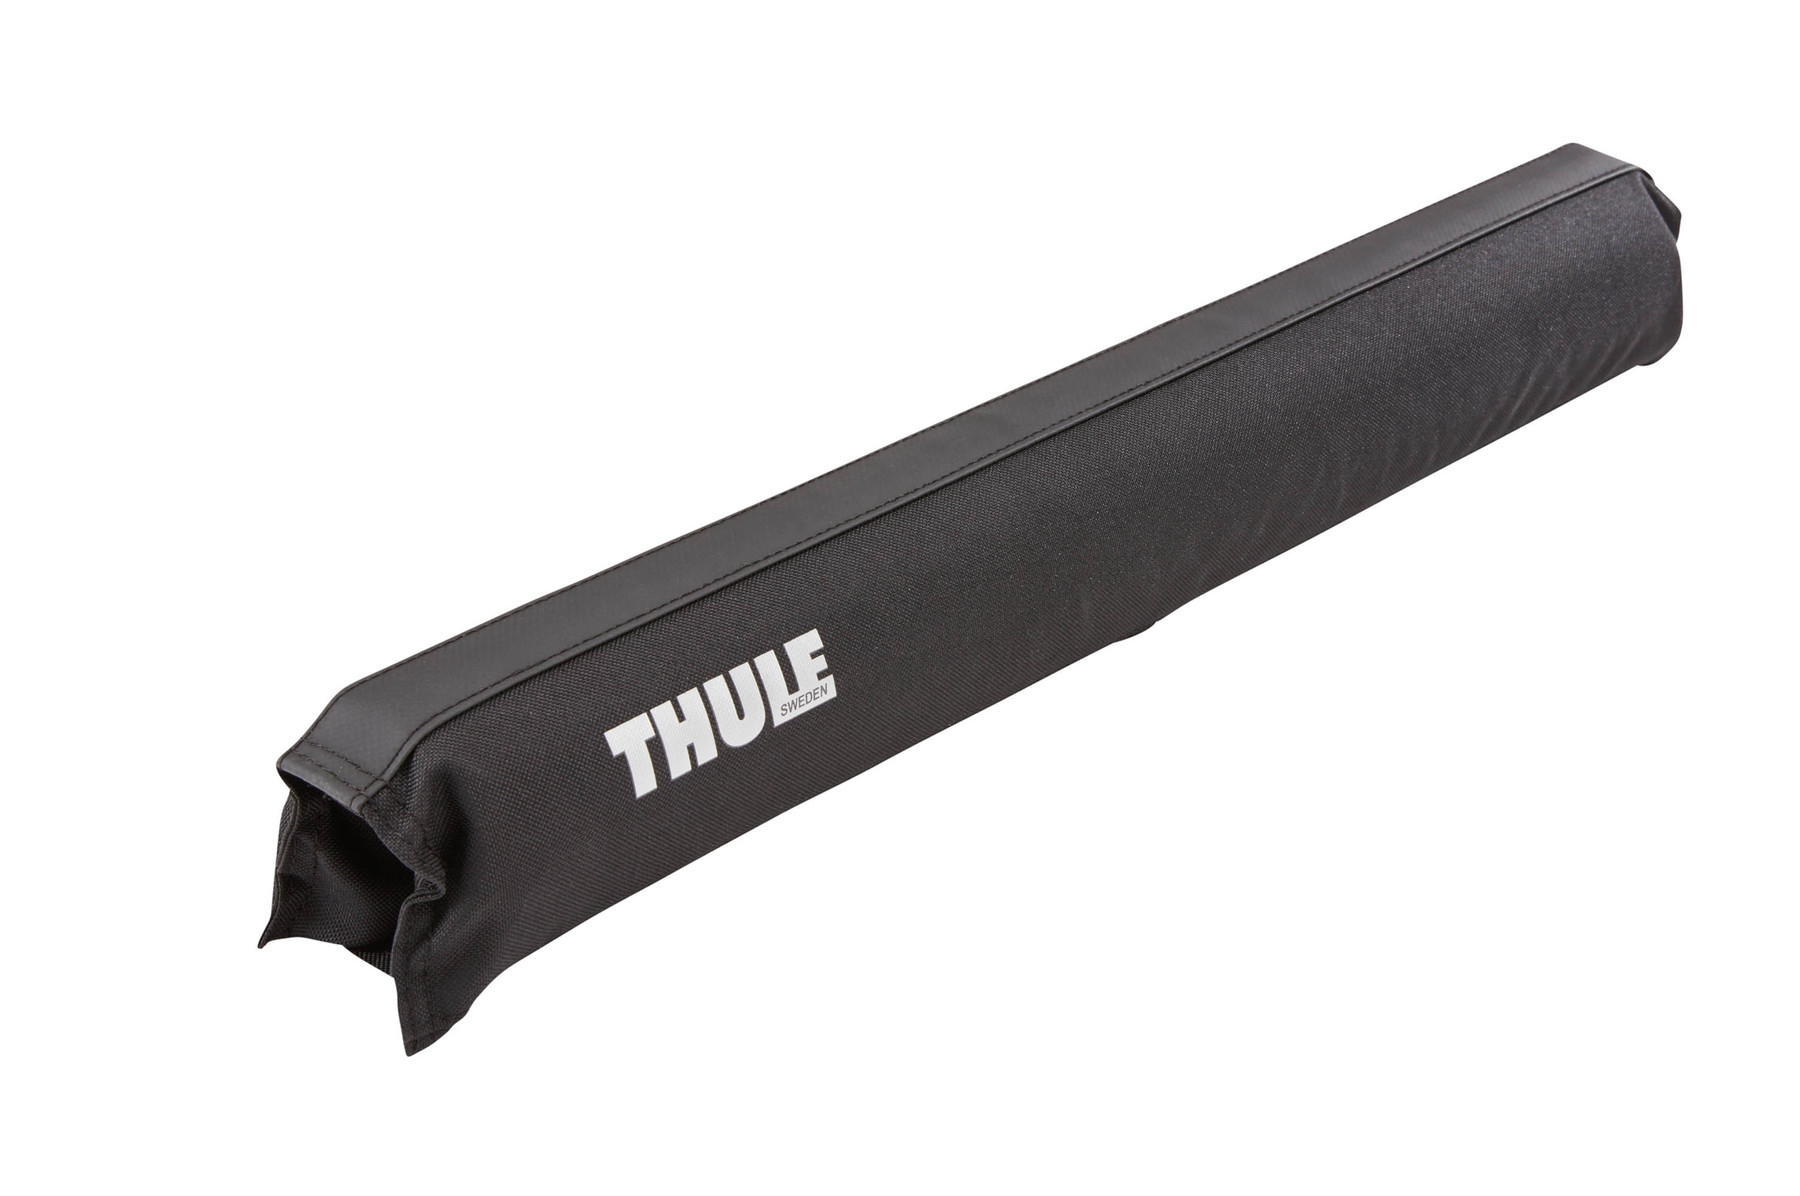 Thule Surf Pad Narrow